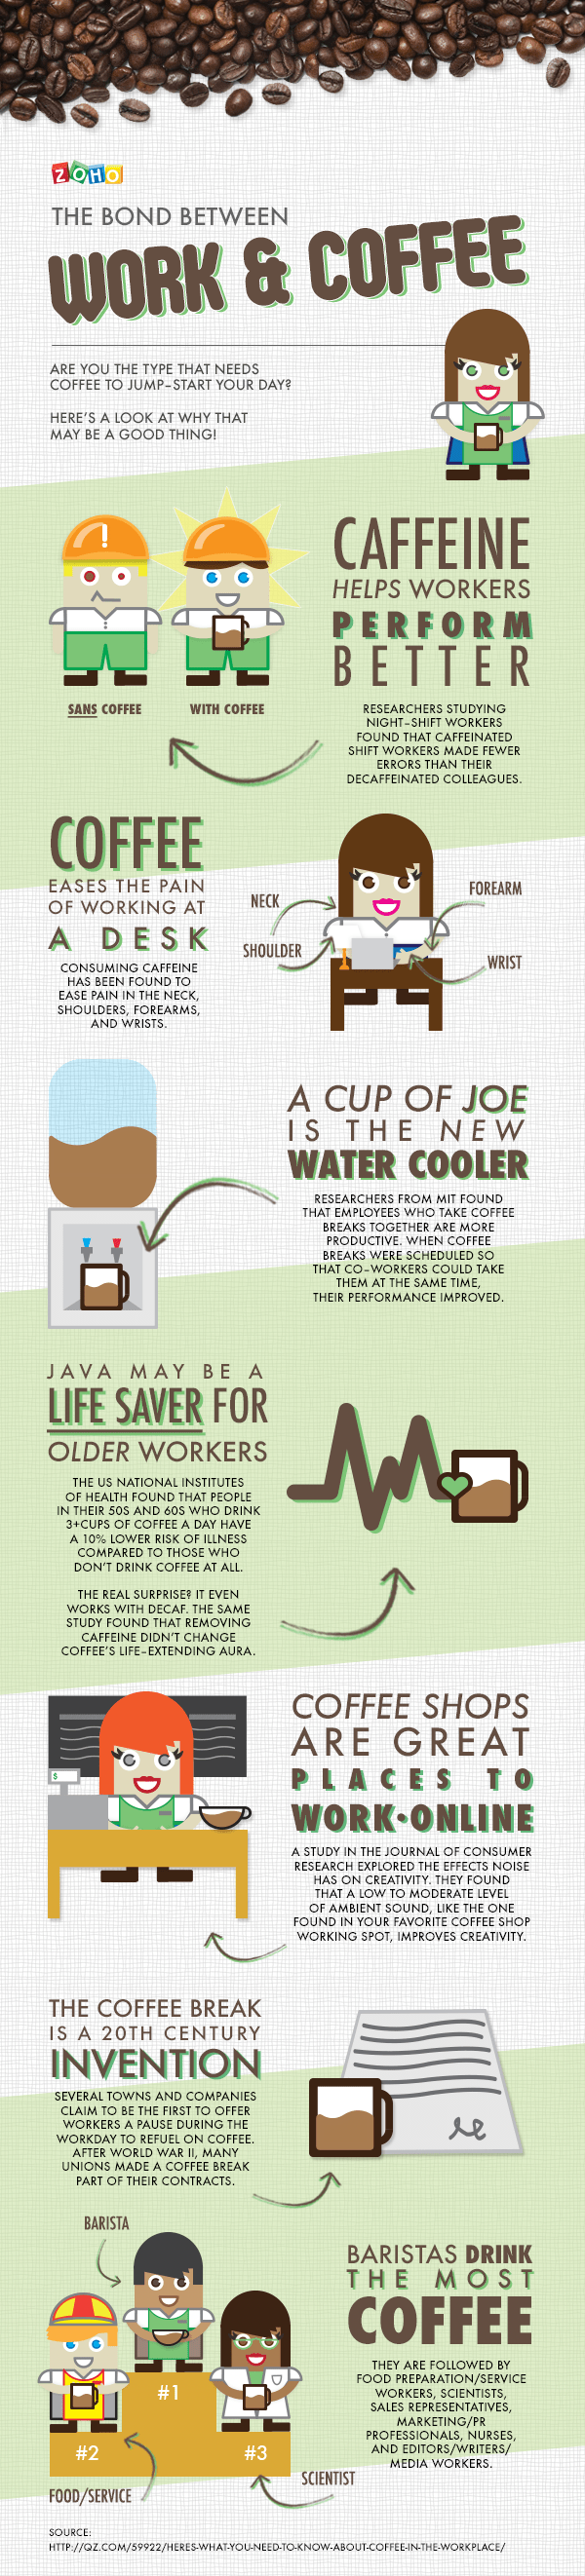 Benefits of Coffee For Employees and Workers